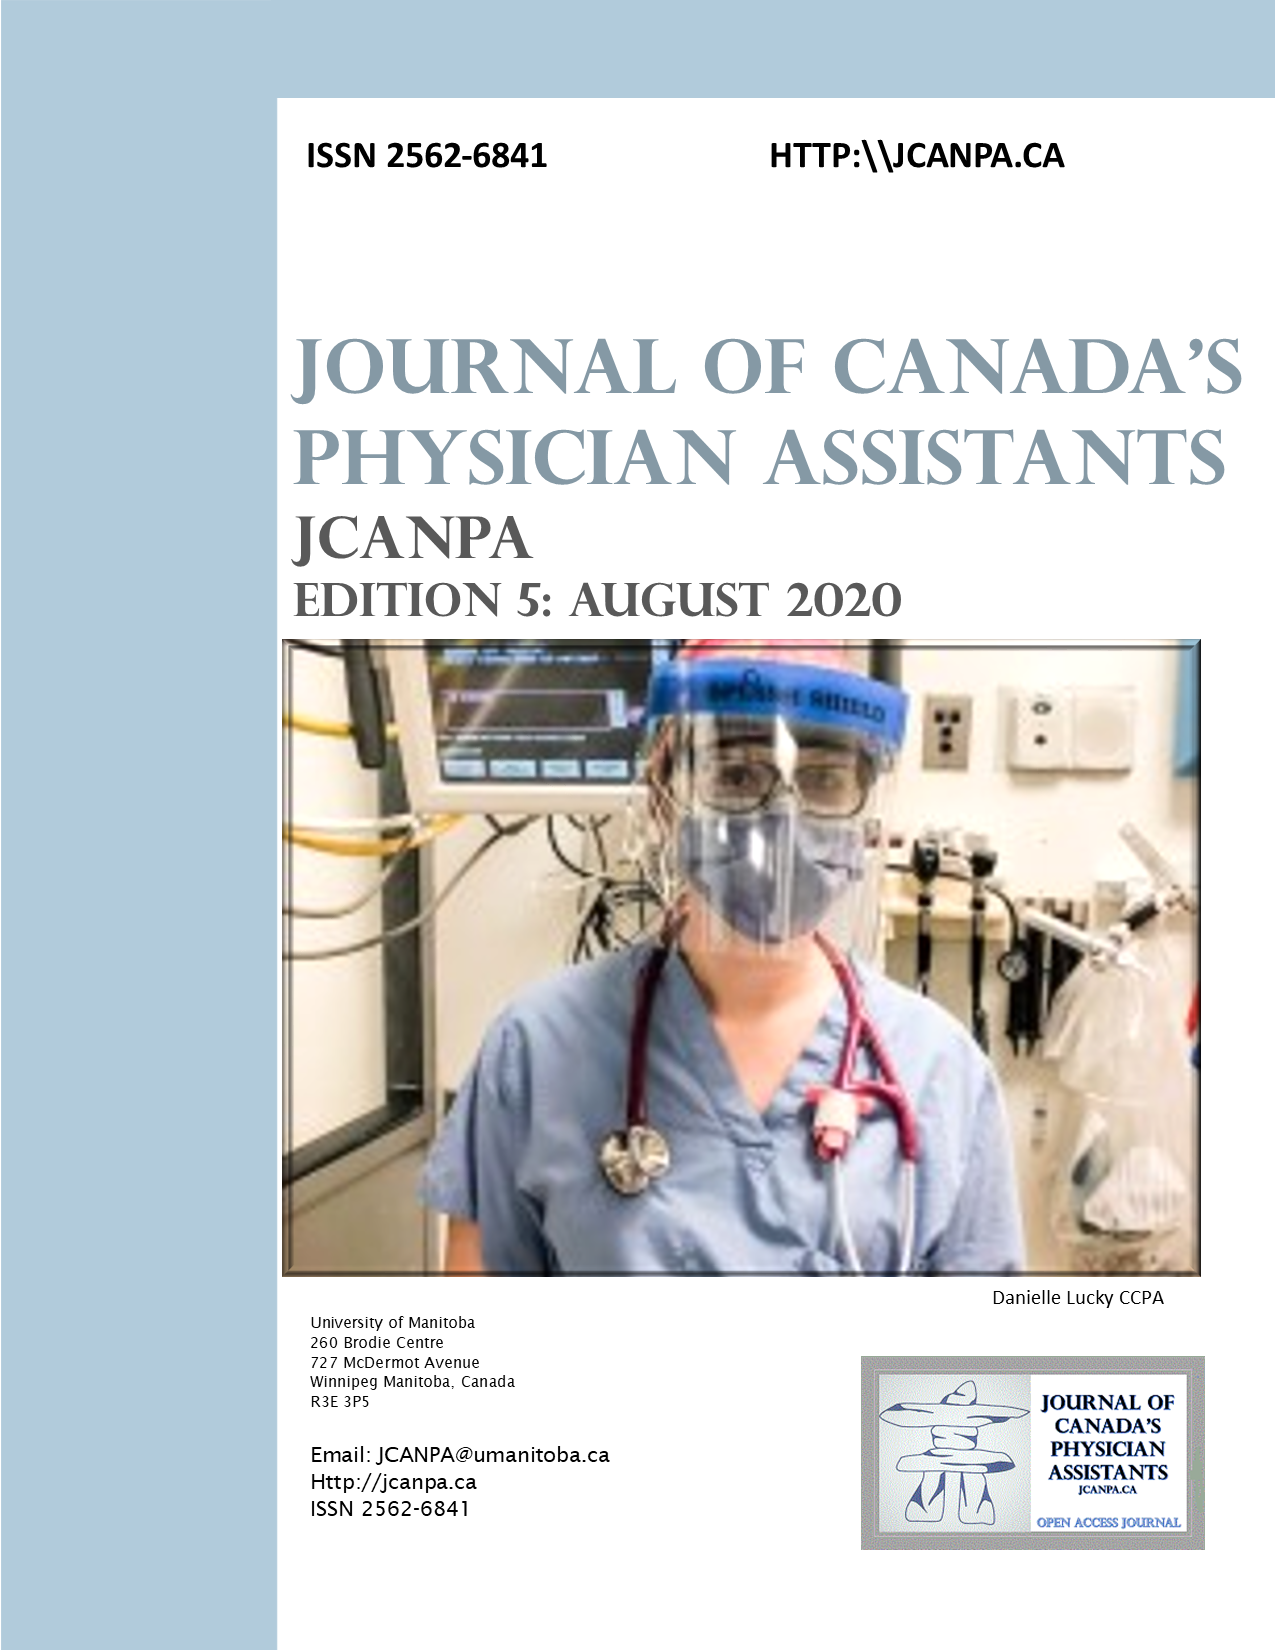 View Vol. 1 No. 5 (2020): The Journal of Canada's Physician Assistants (http://JCANPA.ca)